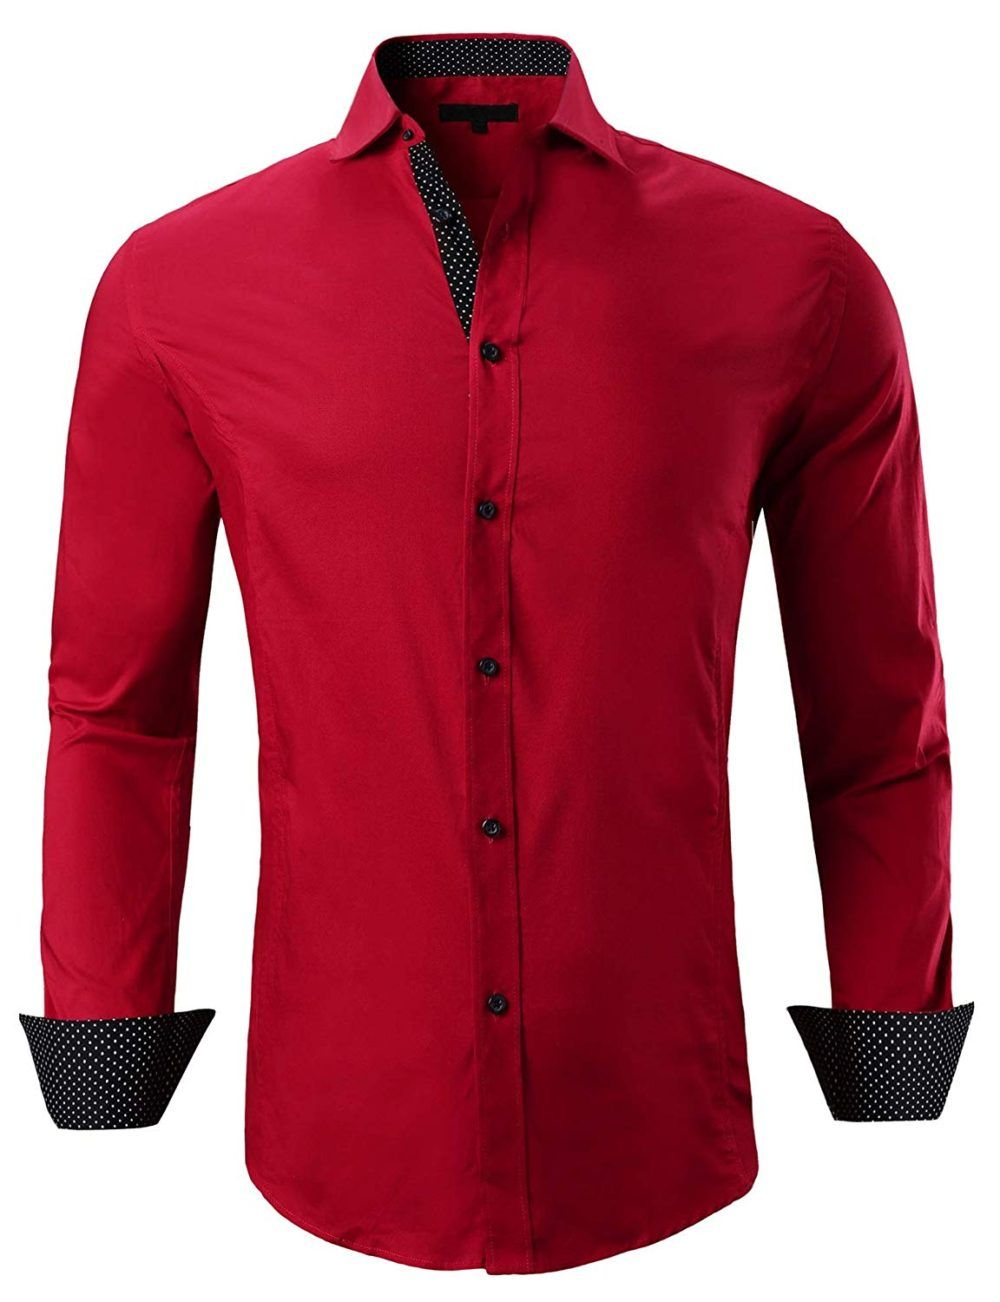 SHOWNO Men Long Sleeve Trendy with Velvet Warm Thicken Winter Button Down Blouse Shirt